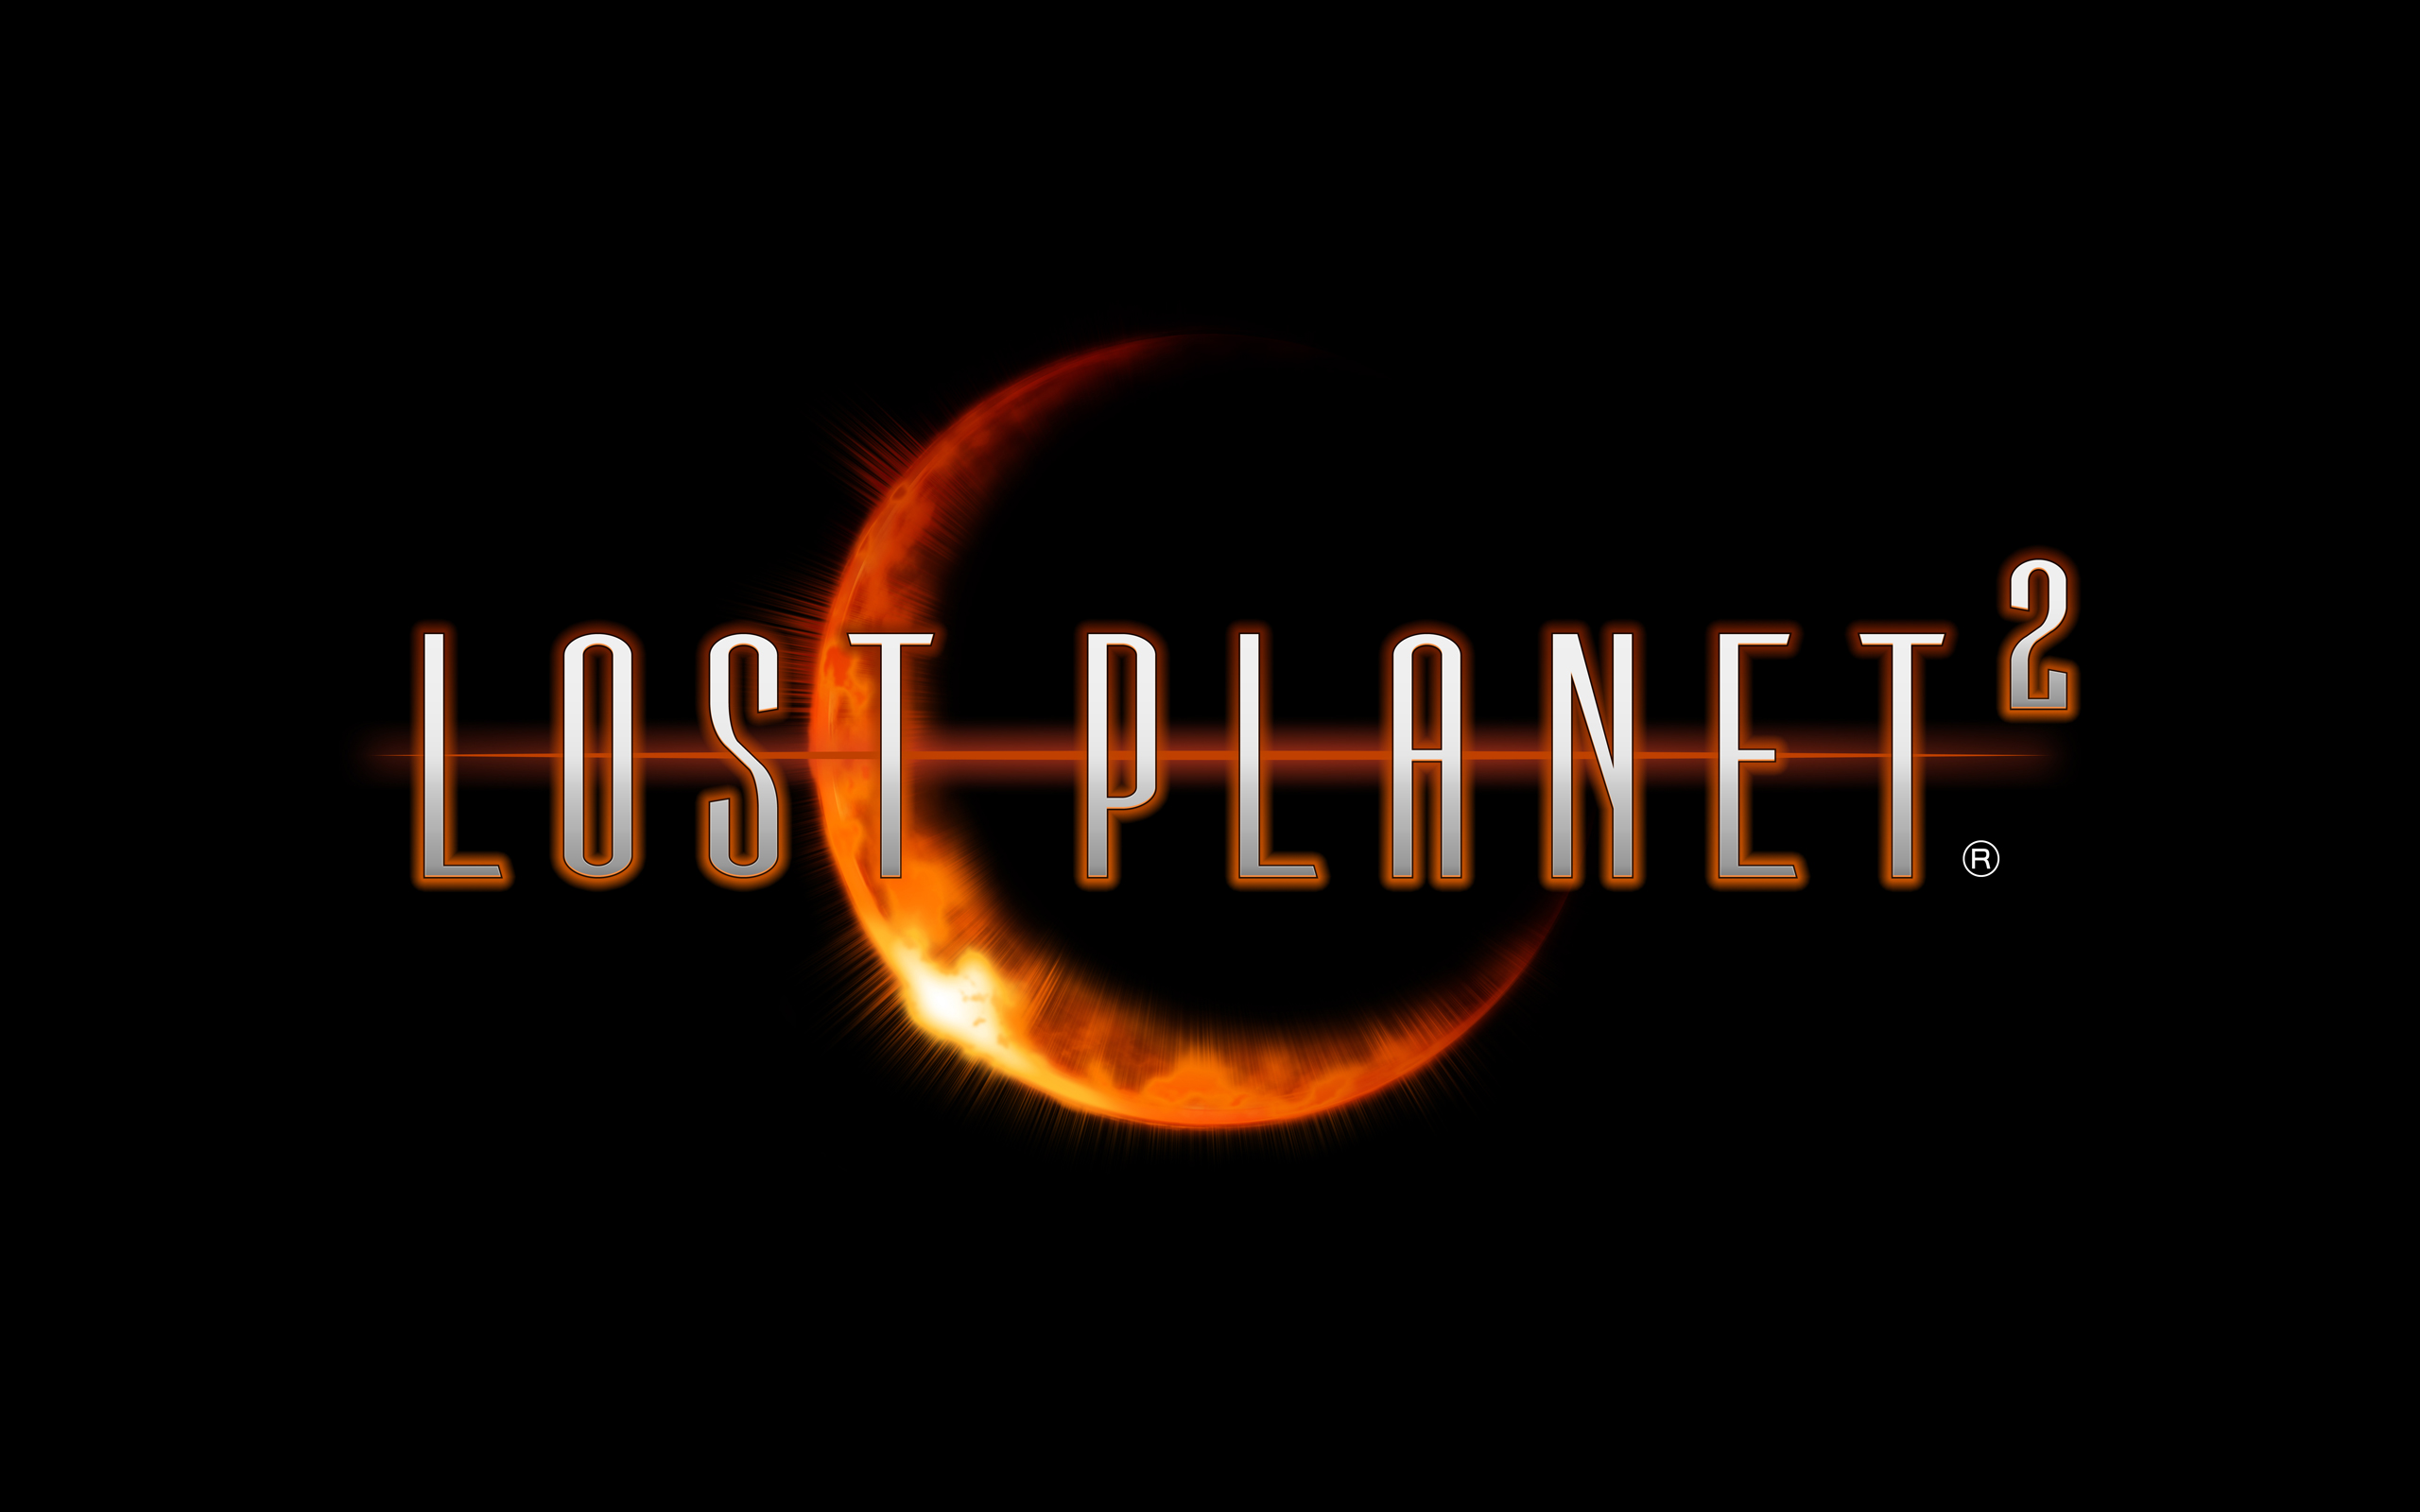 lost planet 2 logo wallpaper 44539